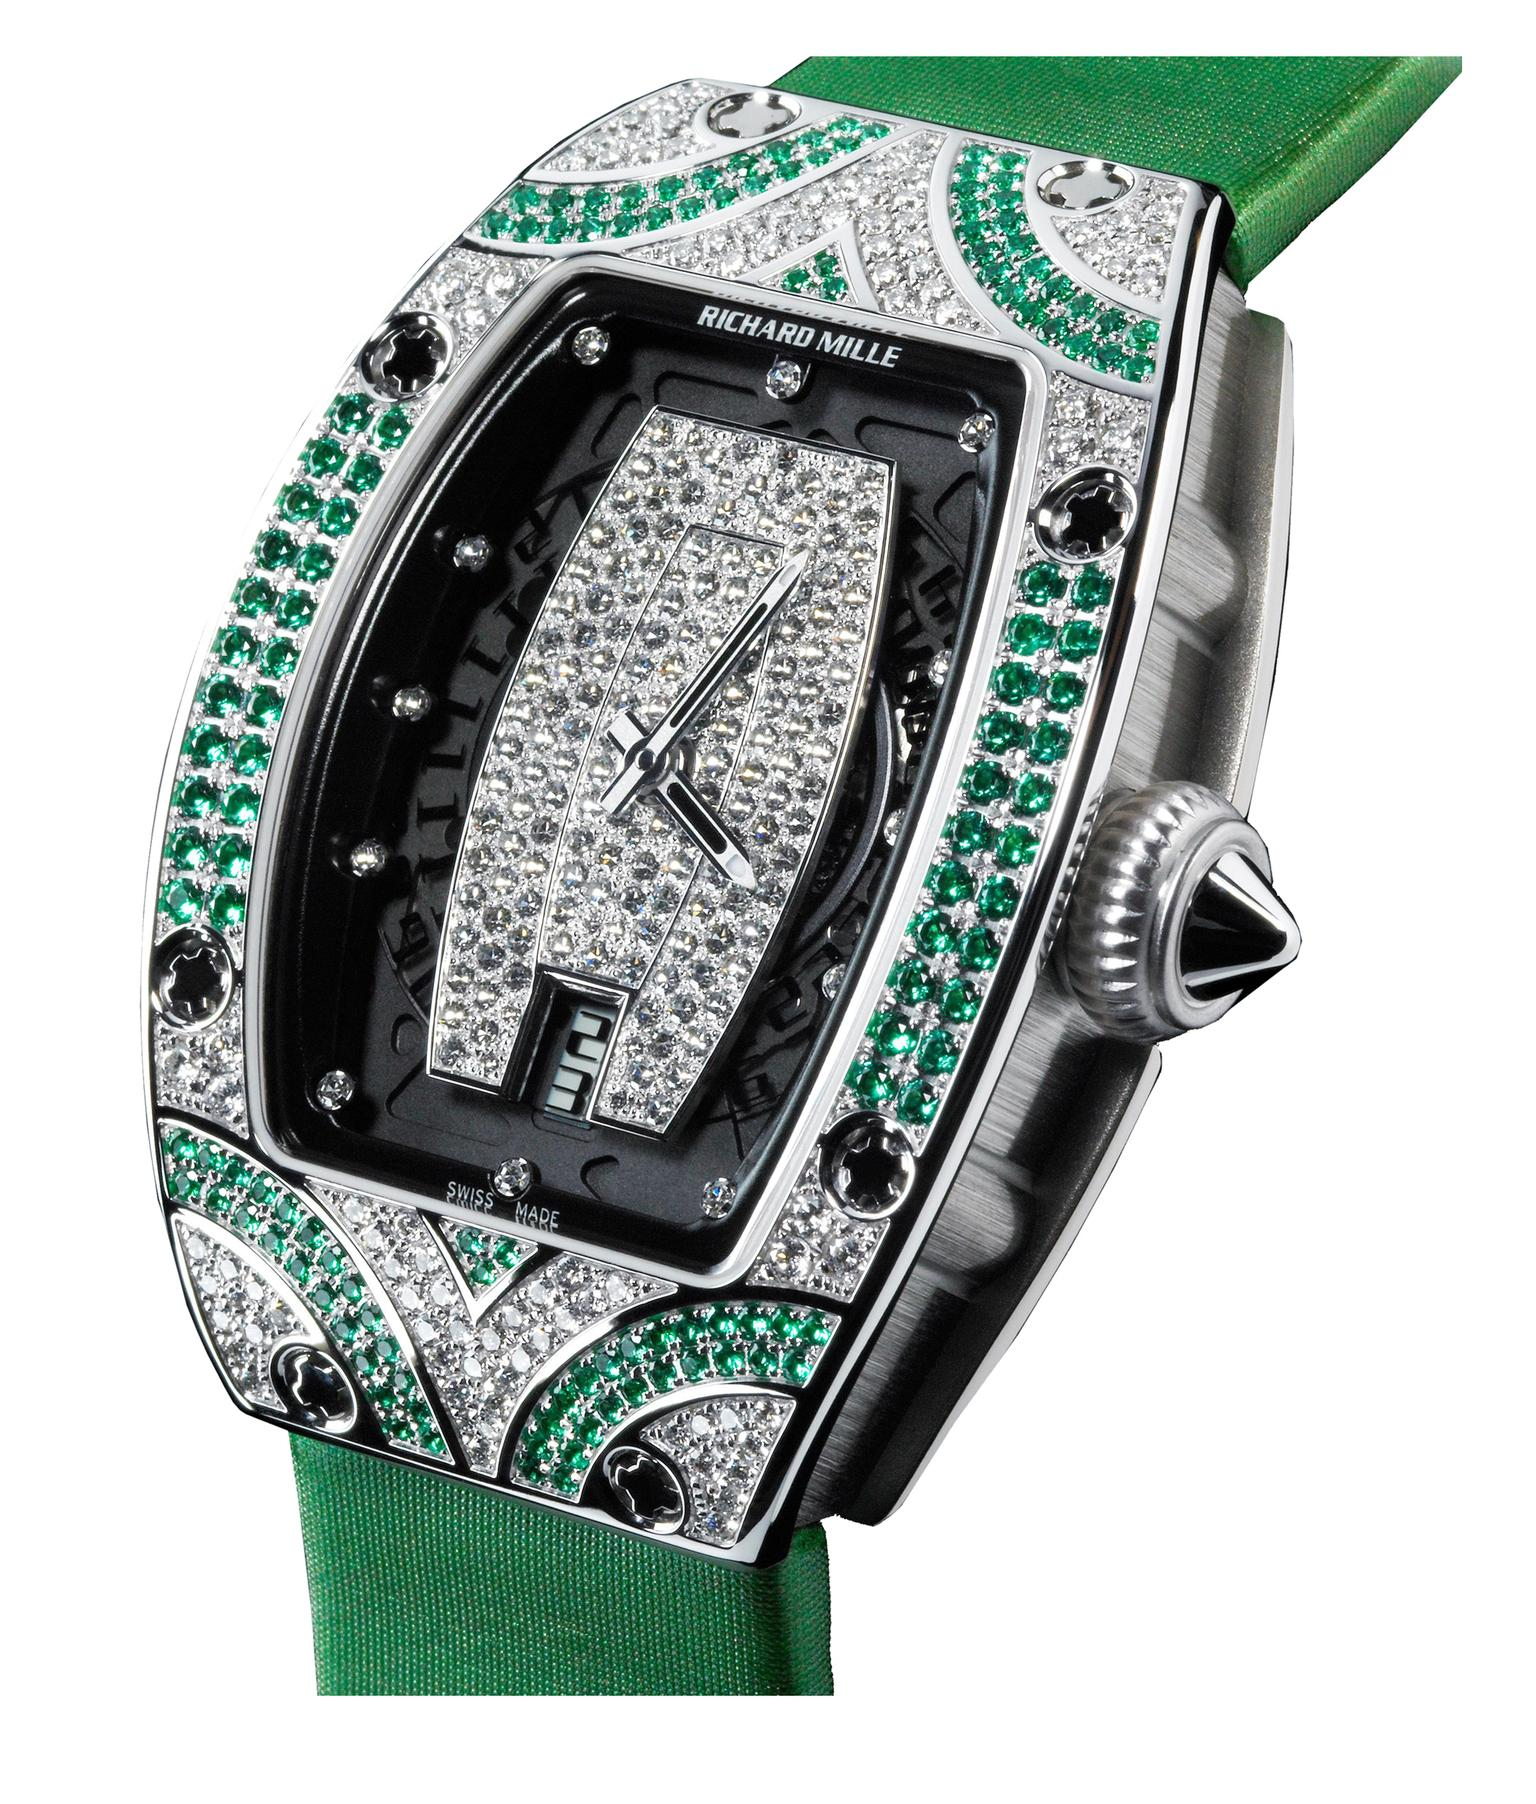 Richard Mille 007 emeralds and diamonds_20131017_Zoom